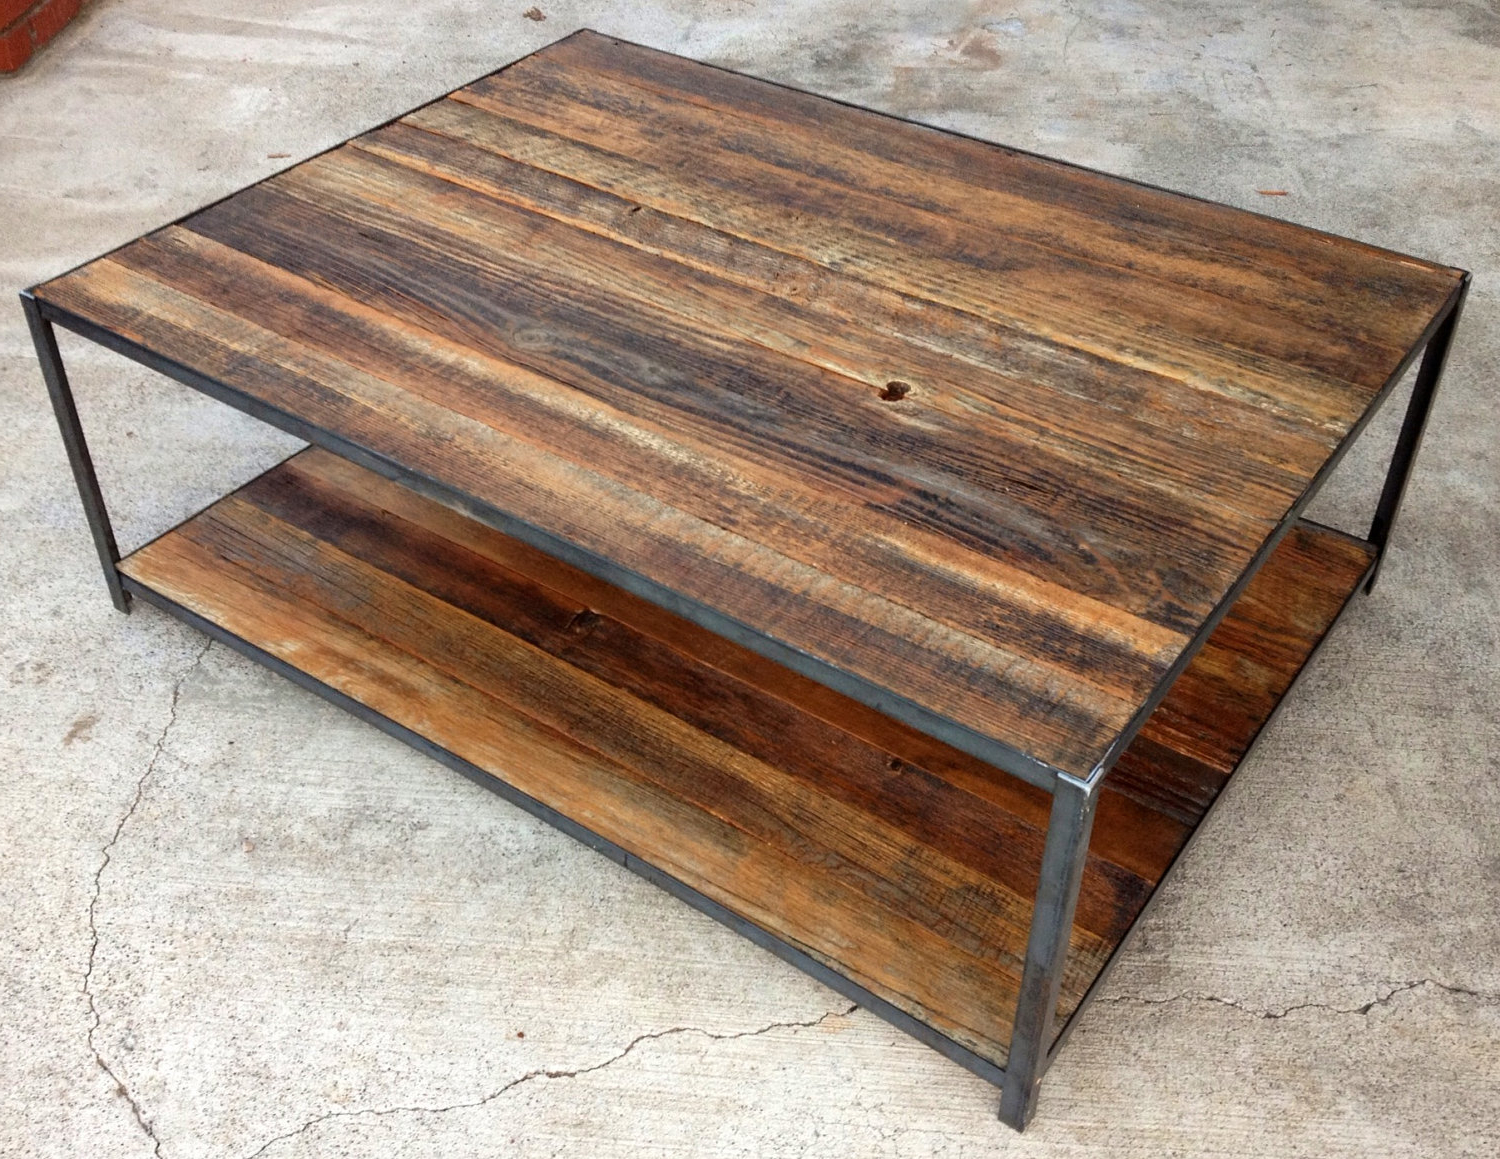 Best Reclaimed Wood Coffee Table Diy 53 On Home Design Within Fashionable Reclaimed Pine & Iron Coffee Tables (View 5 of 20)